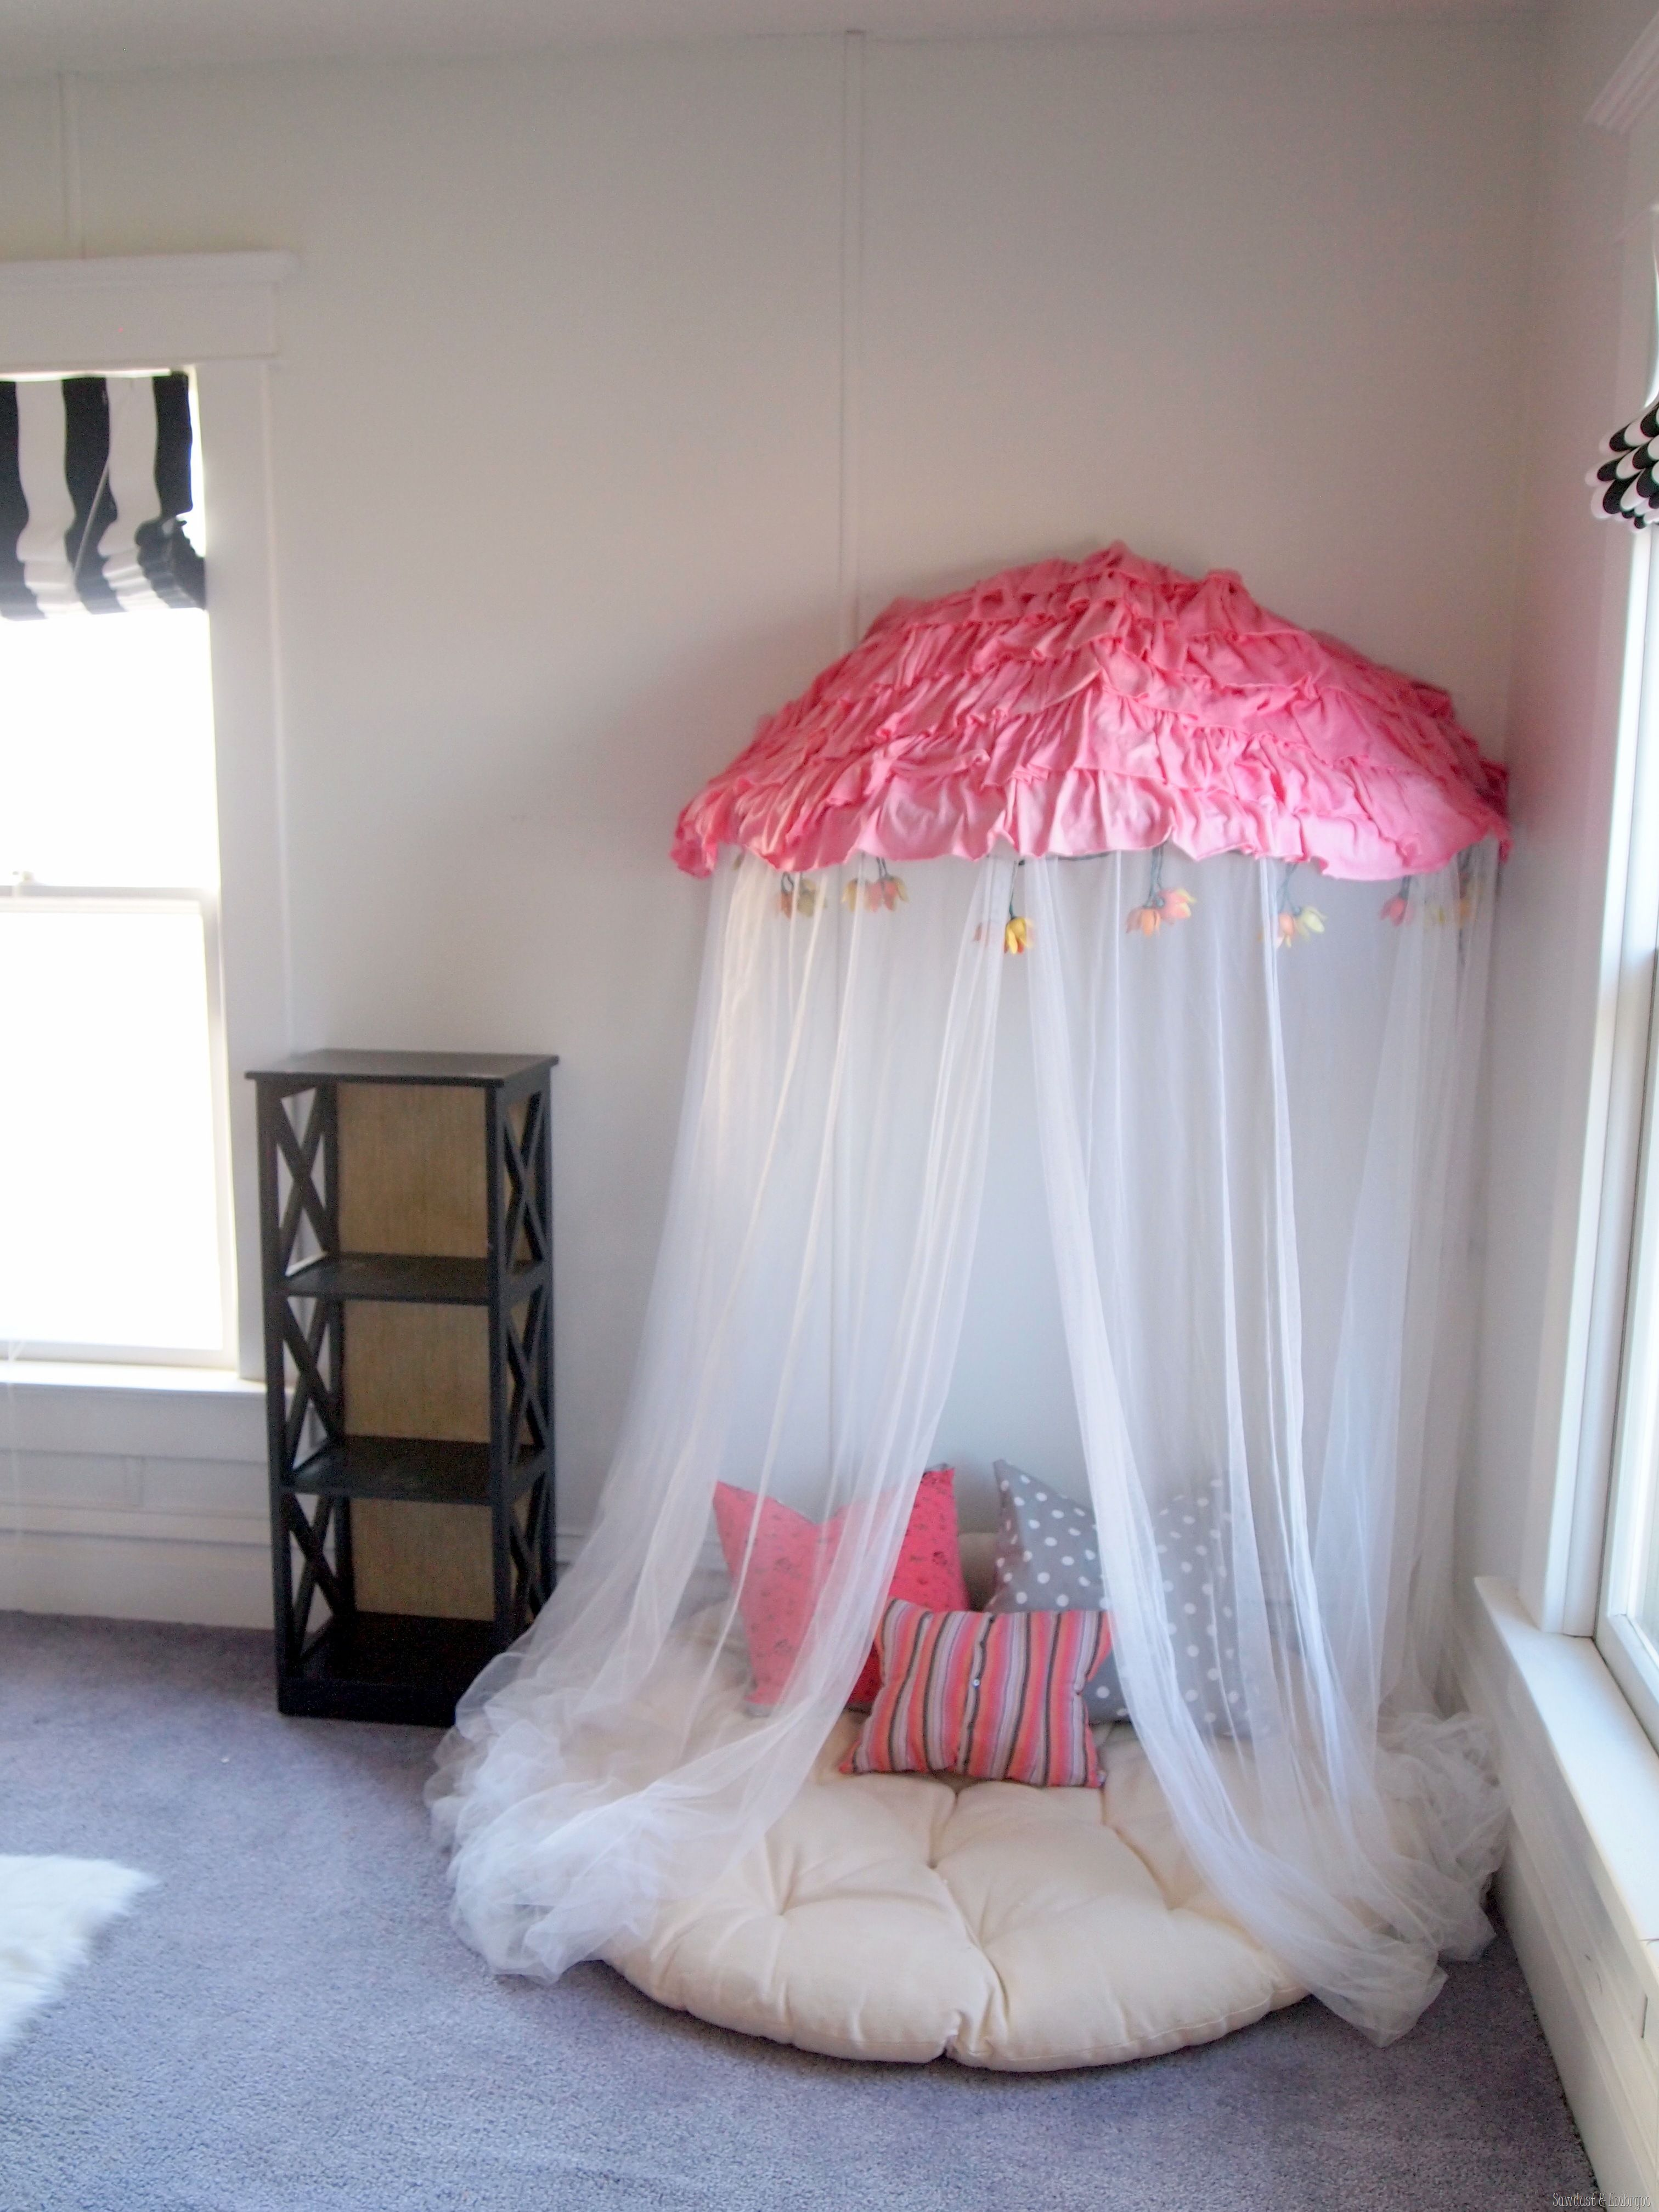 Pleasant Bedroom With Reading Nook Using Mosquito Net Near Window